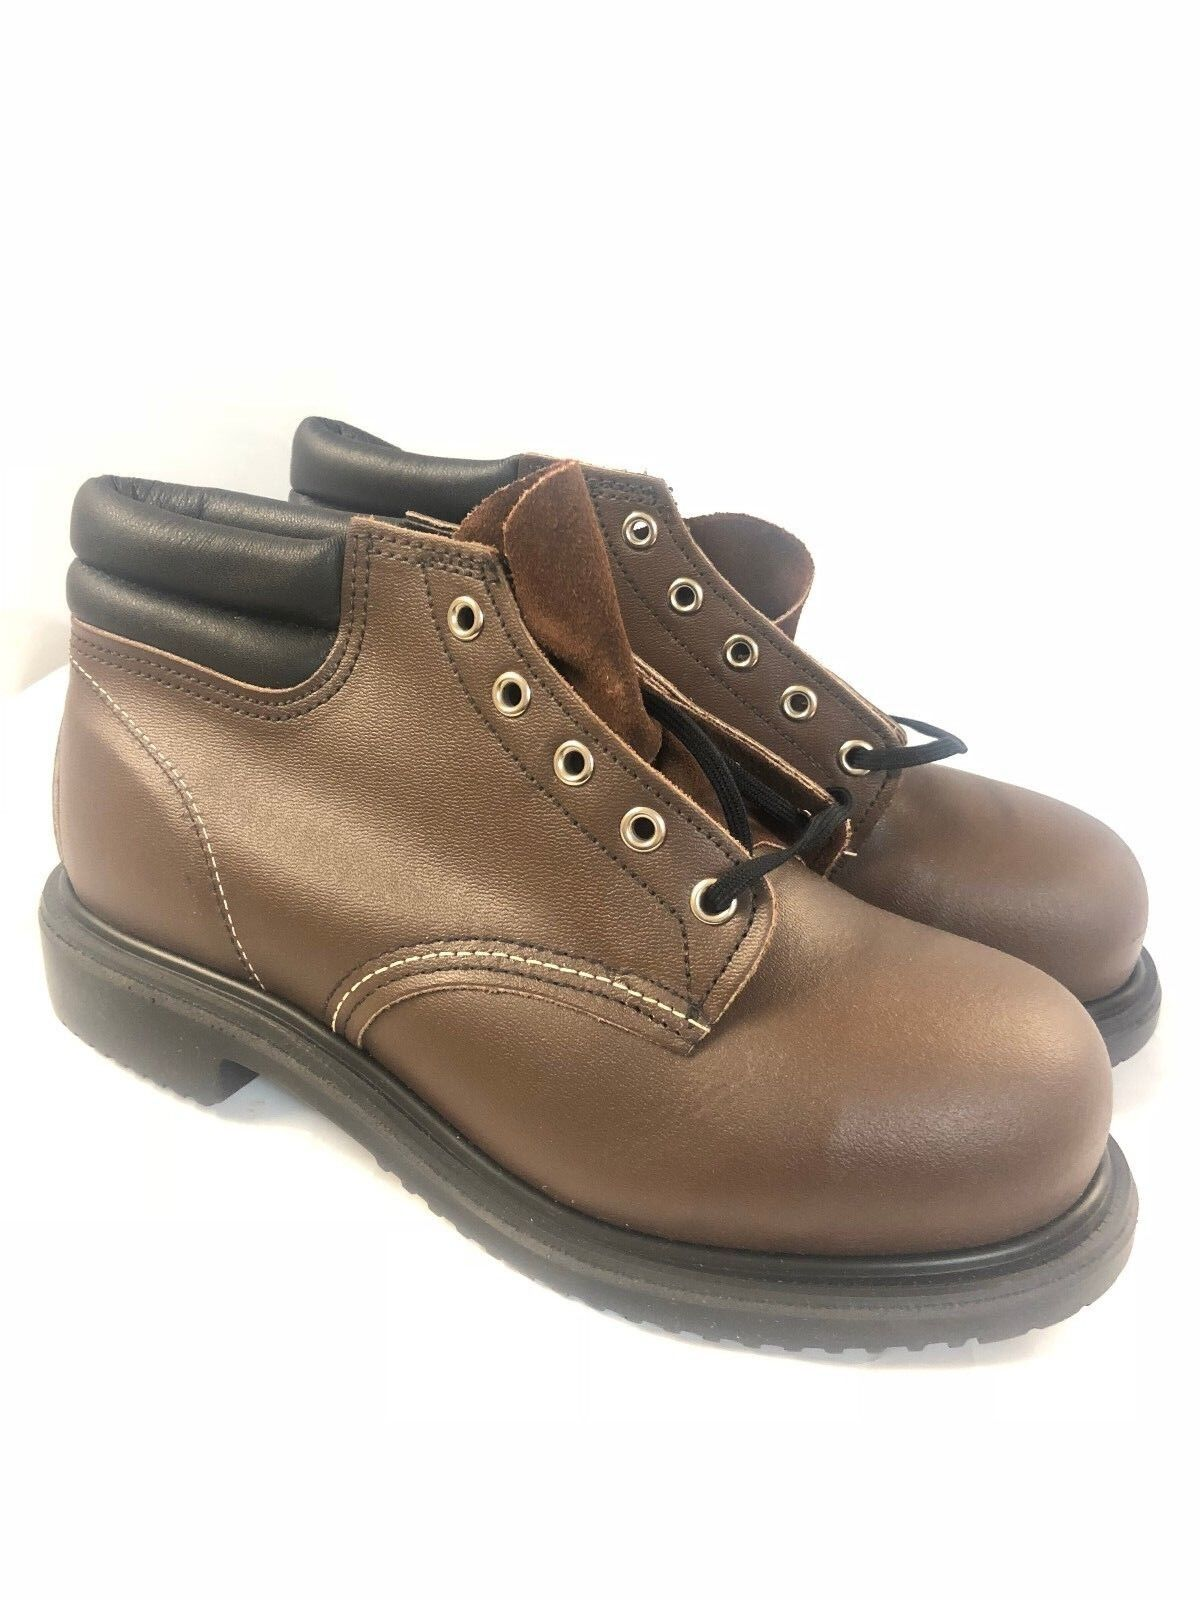 NIB RED WING 8212 MEN'S 5-INCH BOOT BROWN SAFETY SHOES MADE IN USA 6-10 Wide